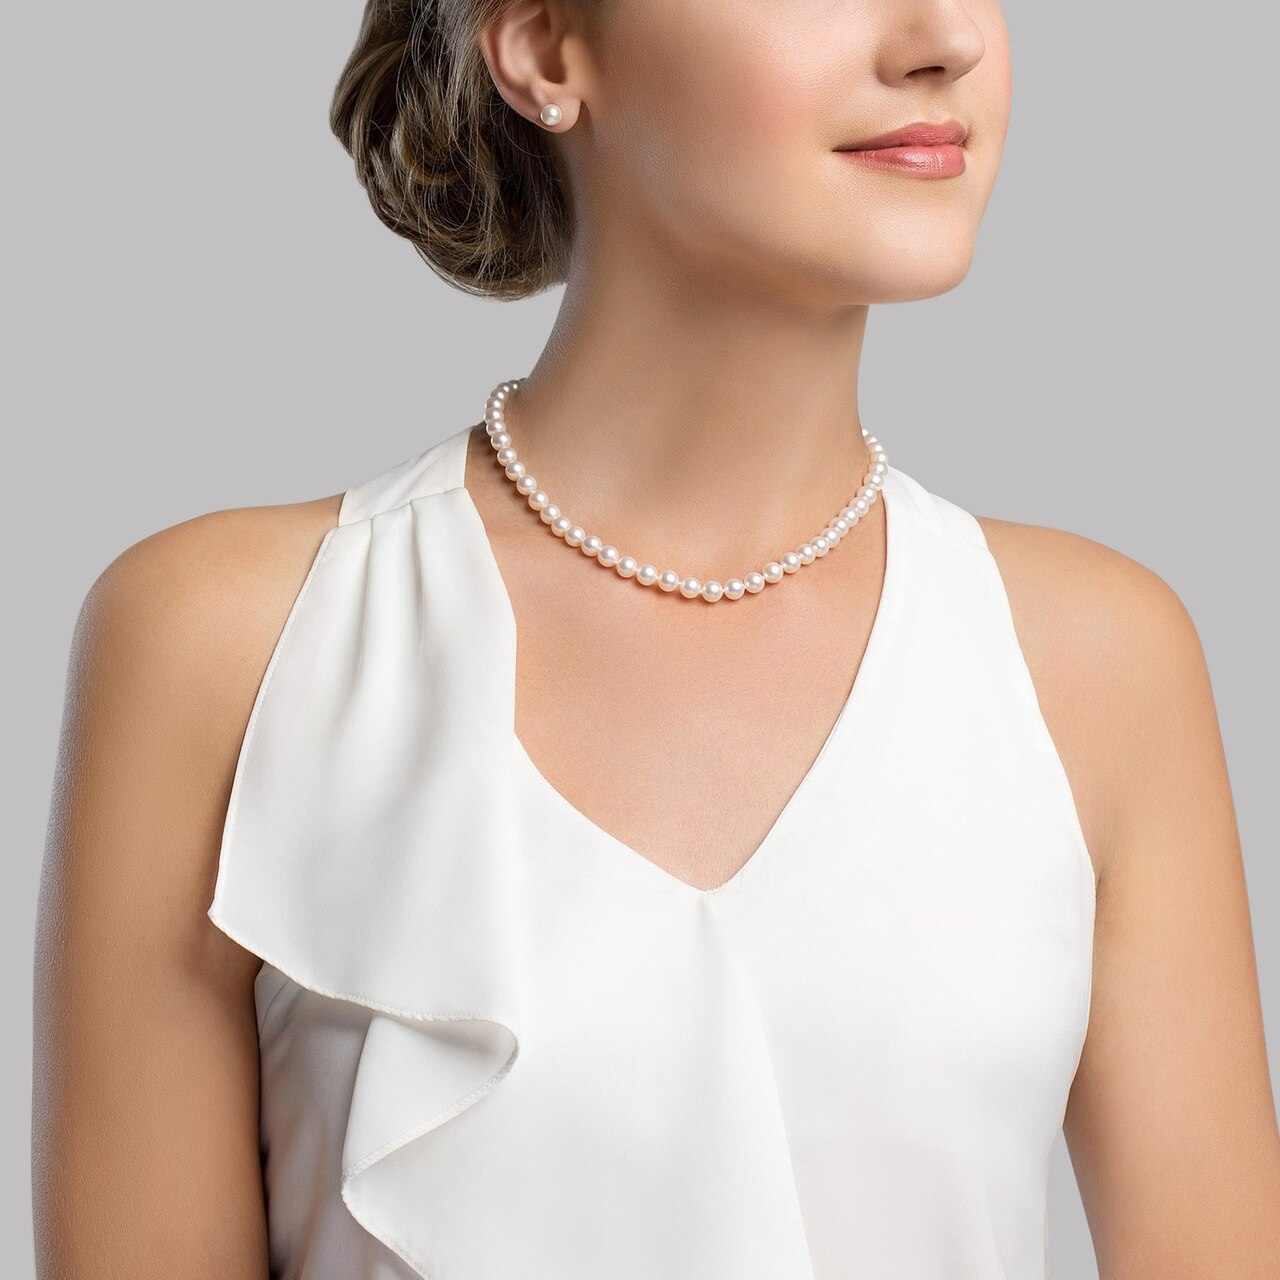 This elegant necklace features 6.0-6.5mm Hanadama Akoya pearls, handpicked for their luminous luster